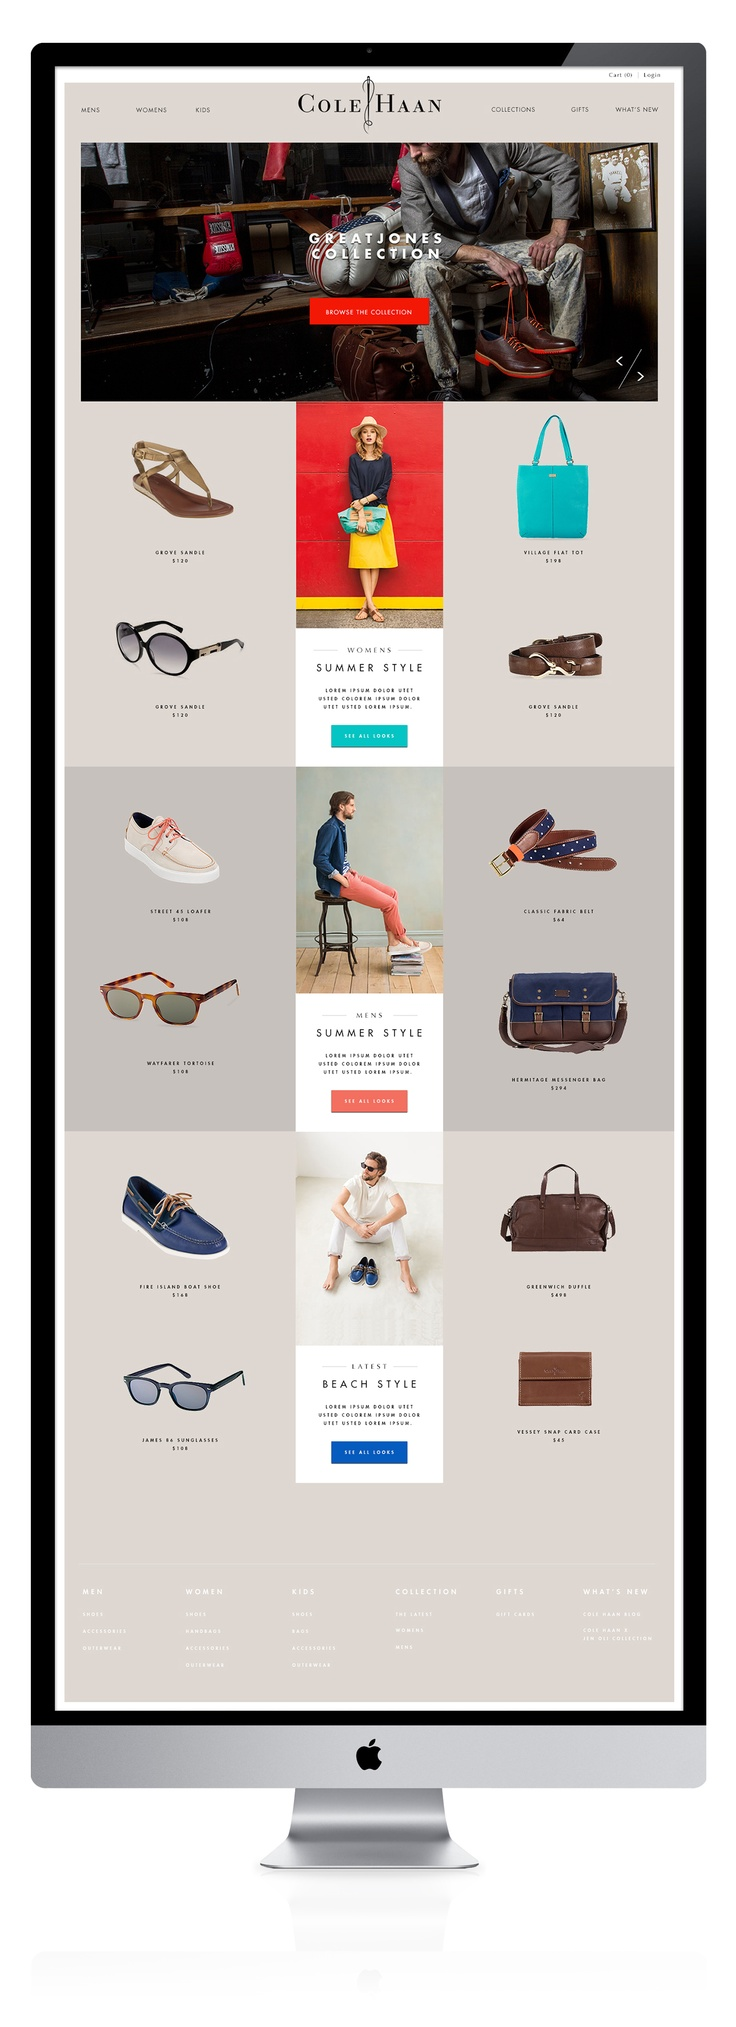 colehaan_home.jpg | #webdesign   Great way to display product -  creative web design layout with lifestyle photos in the center of the page also work well.  Creative Web Design Agency www.IsadoraDesign.com